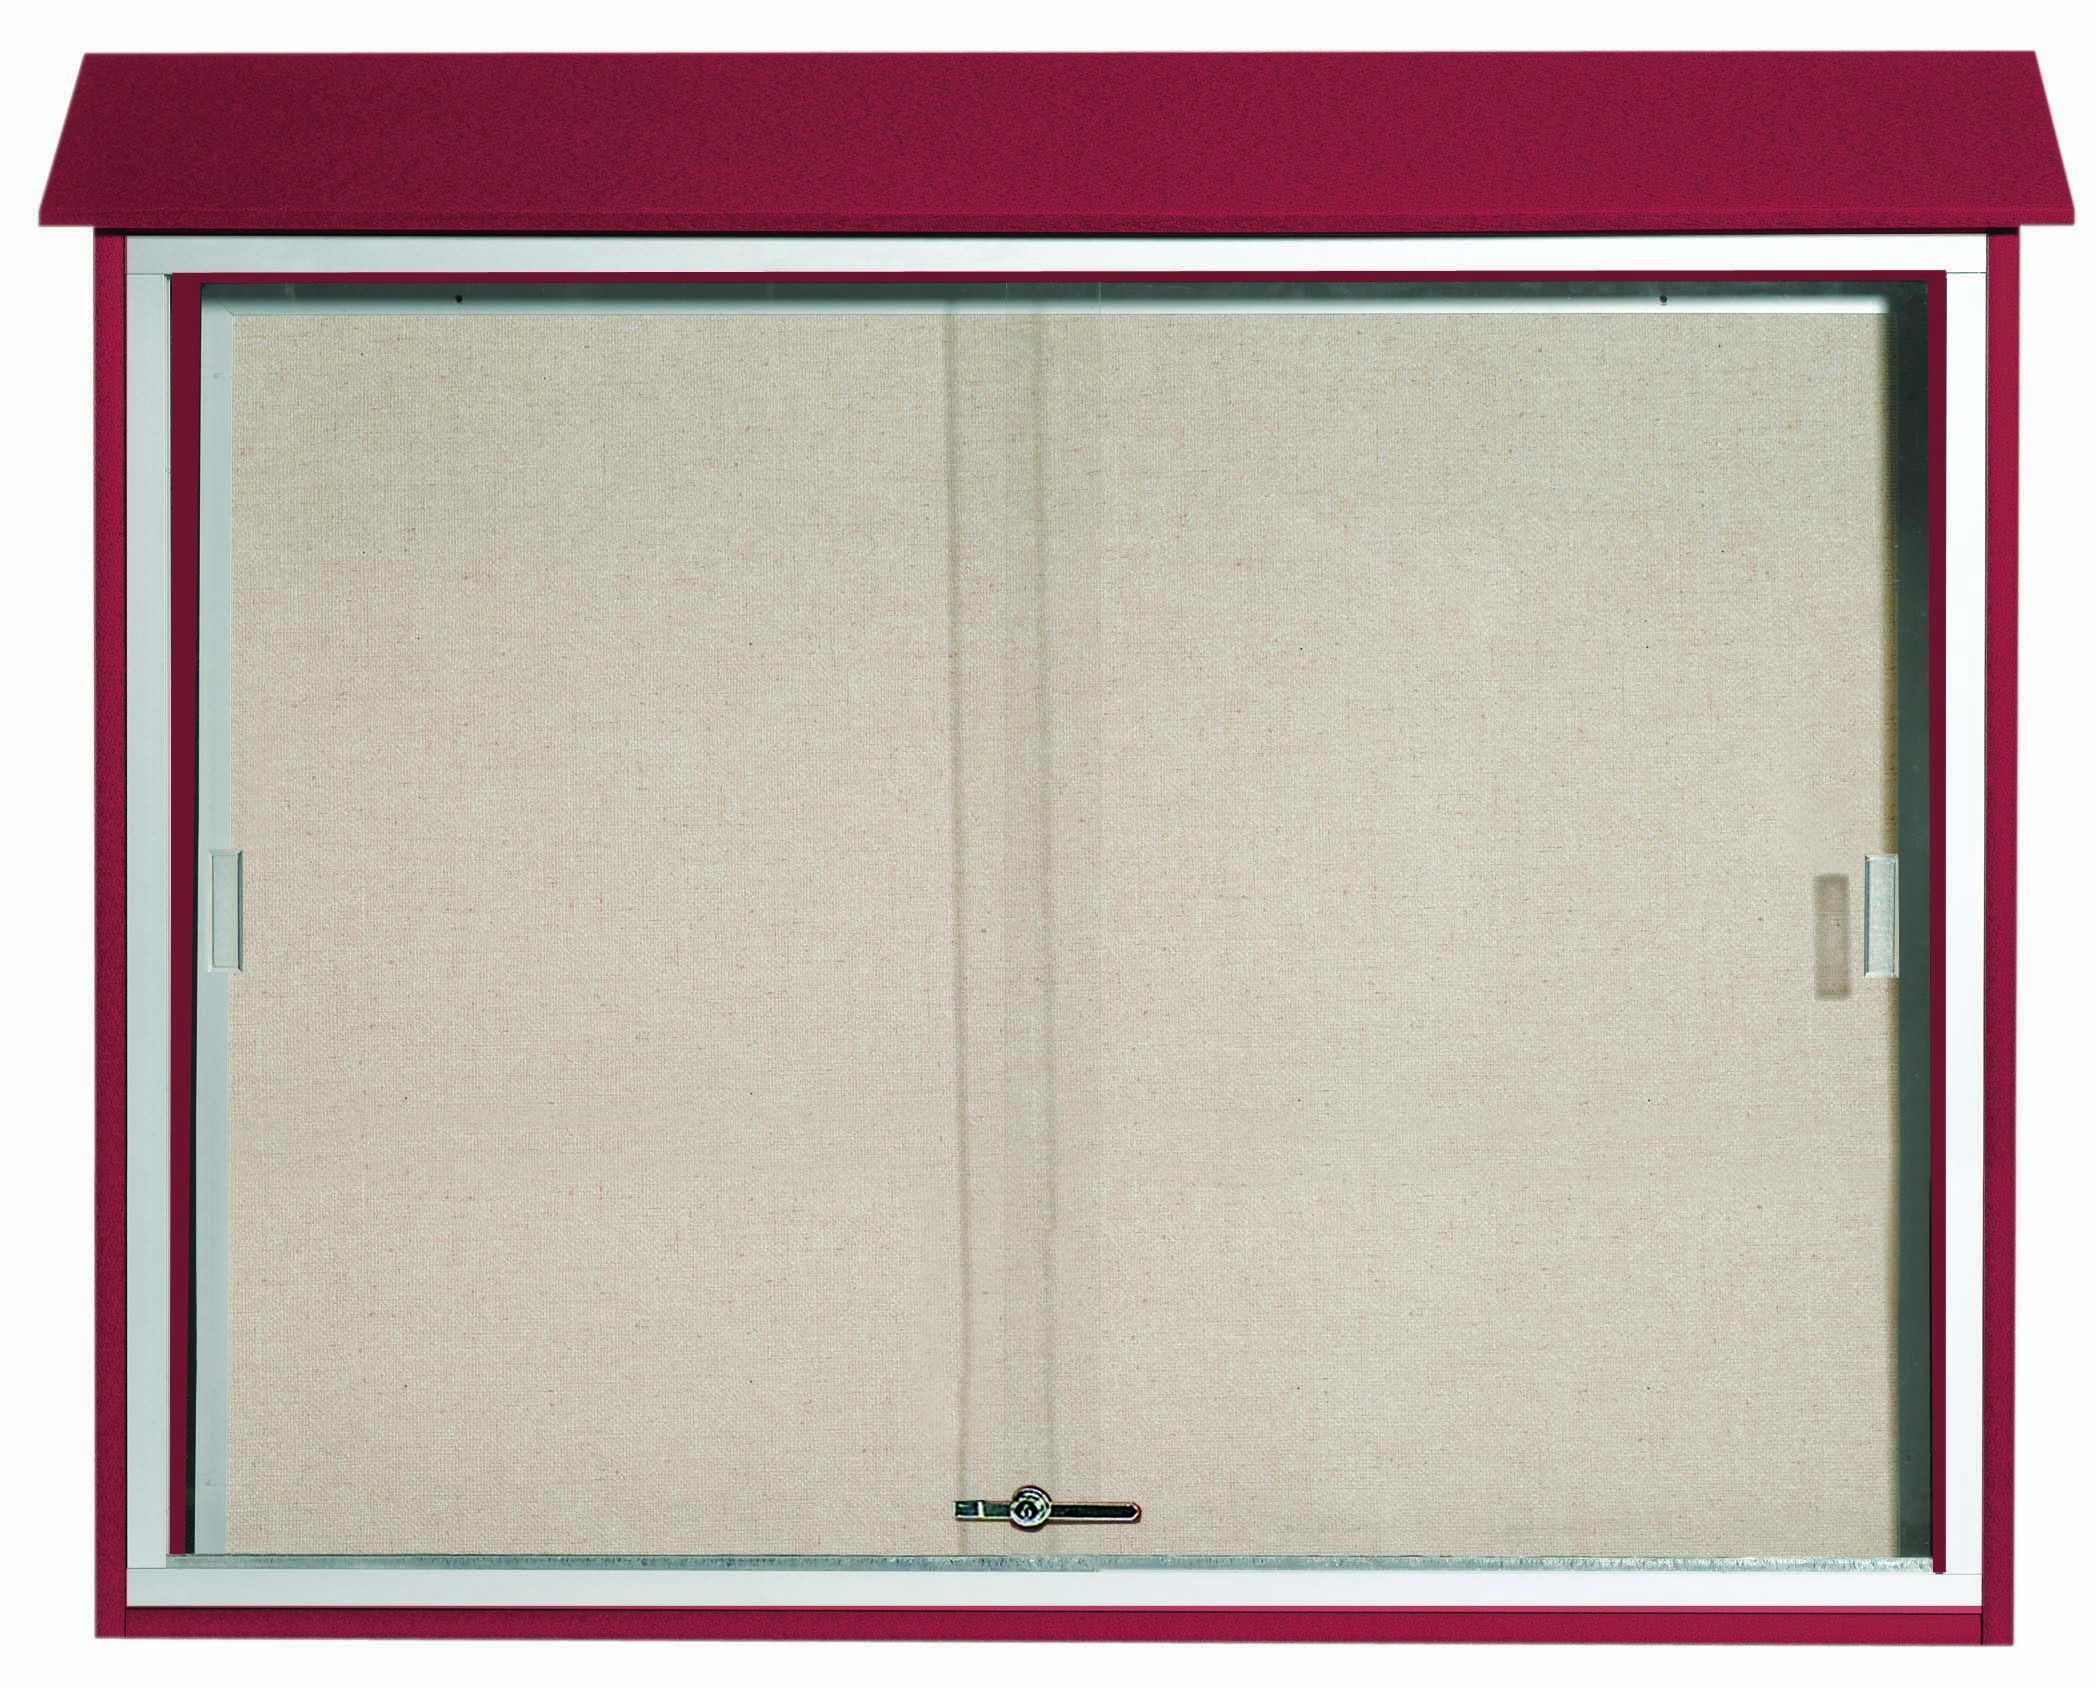 Rosewood Sliding Door Plastic Lumber Message Center with Vinyl Posting Surface- 36